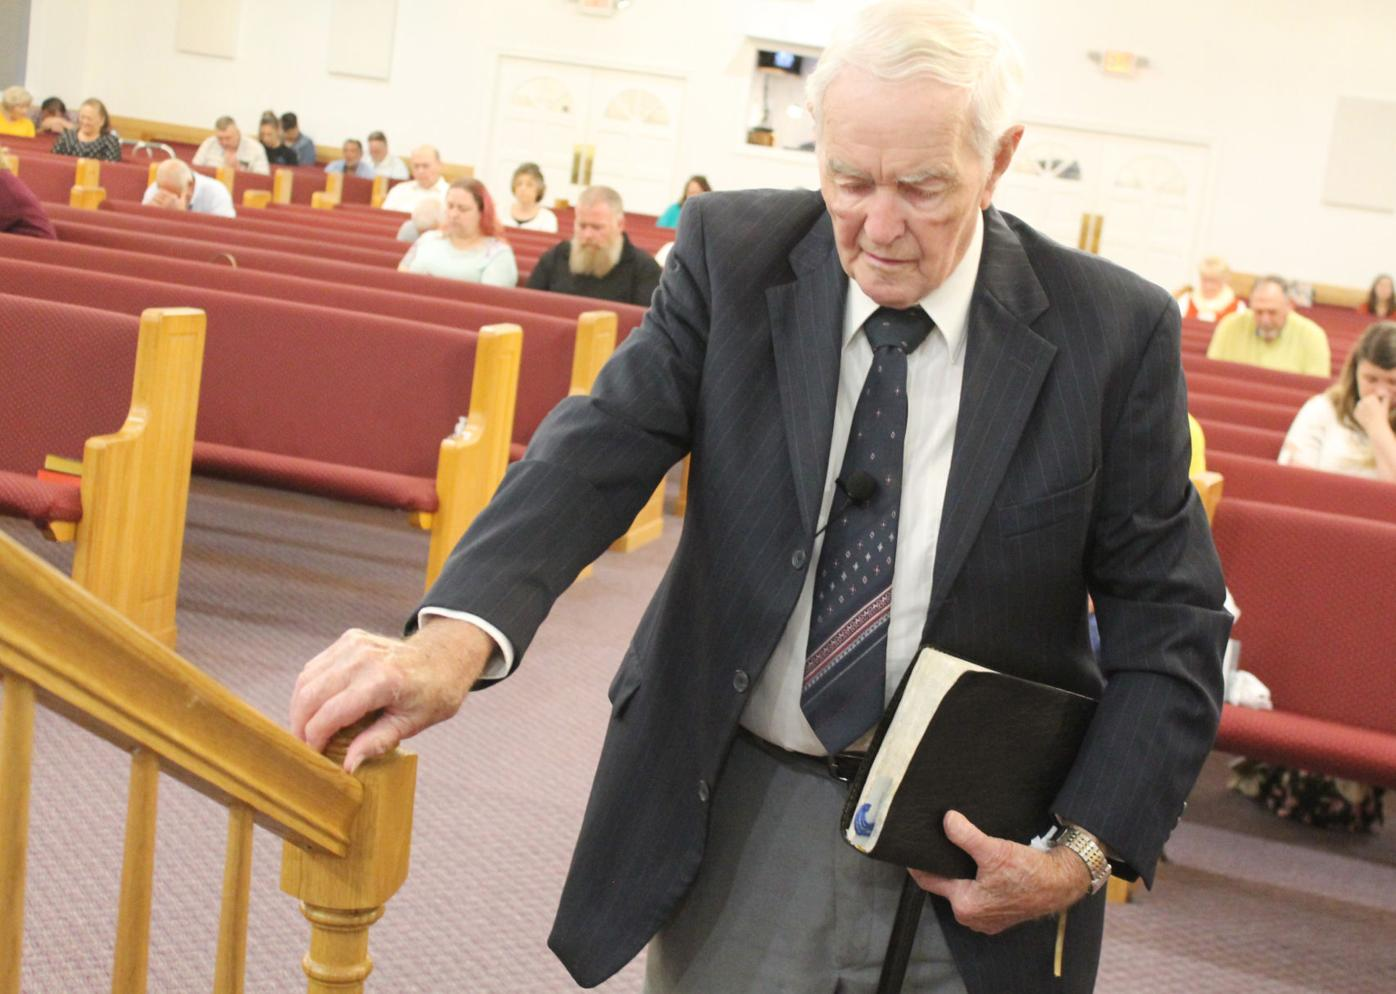 Woodlawn Baptist holds revival